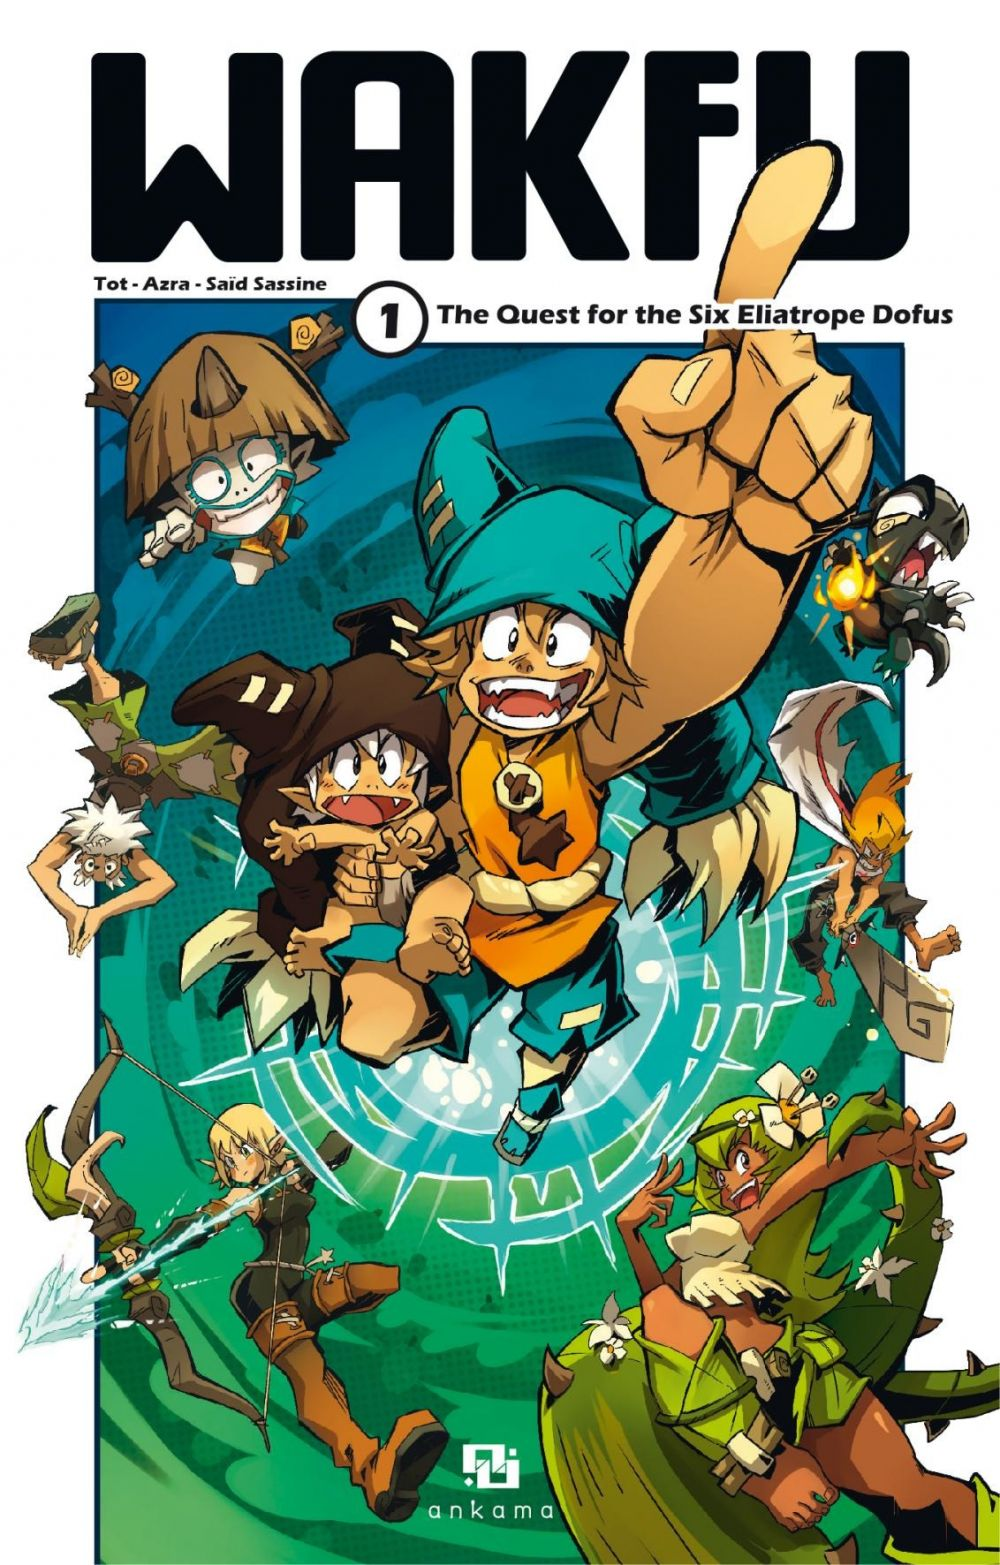 WAKFU MANGA - Tome 1 : The Quest for the Six Eliatrope Dofus